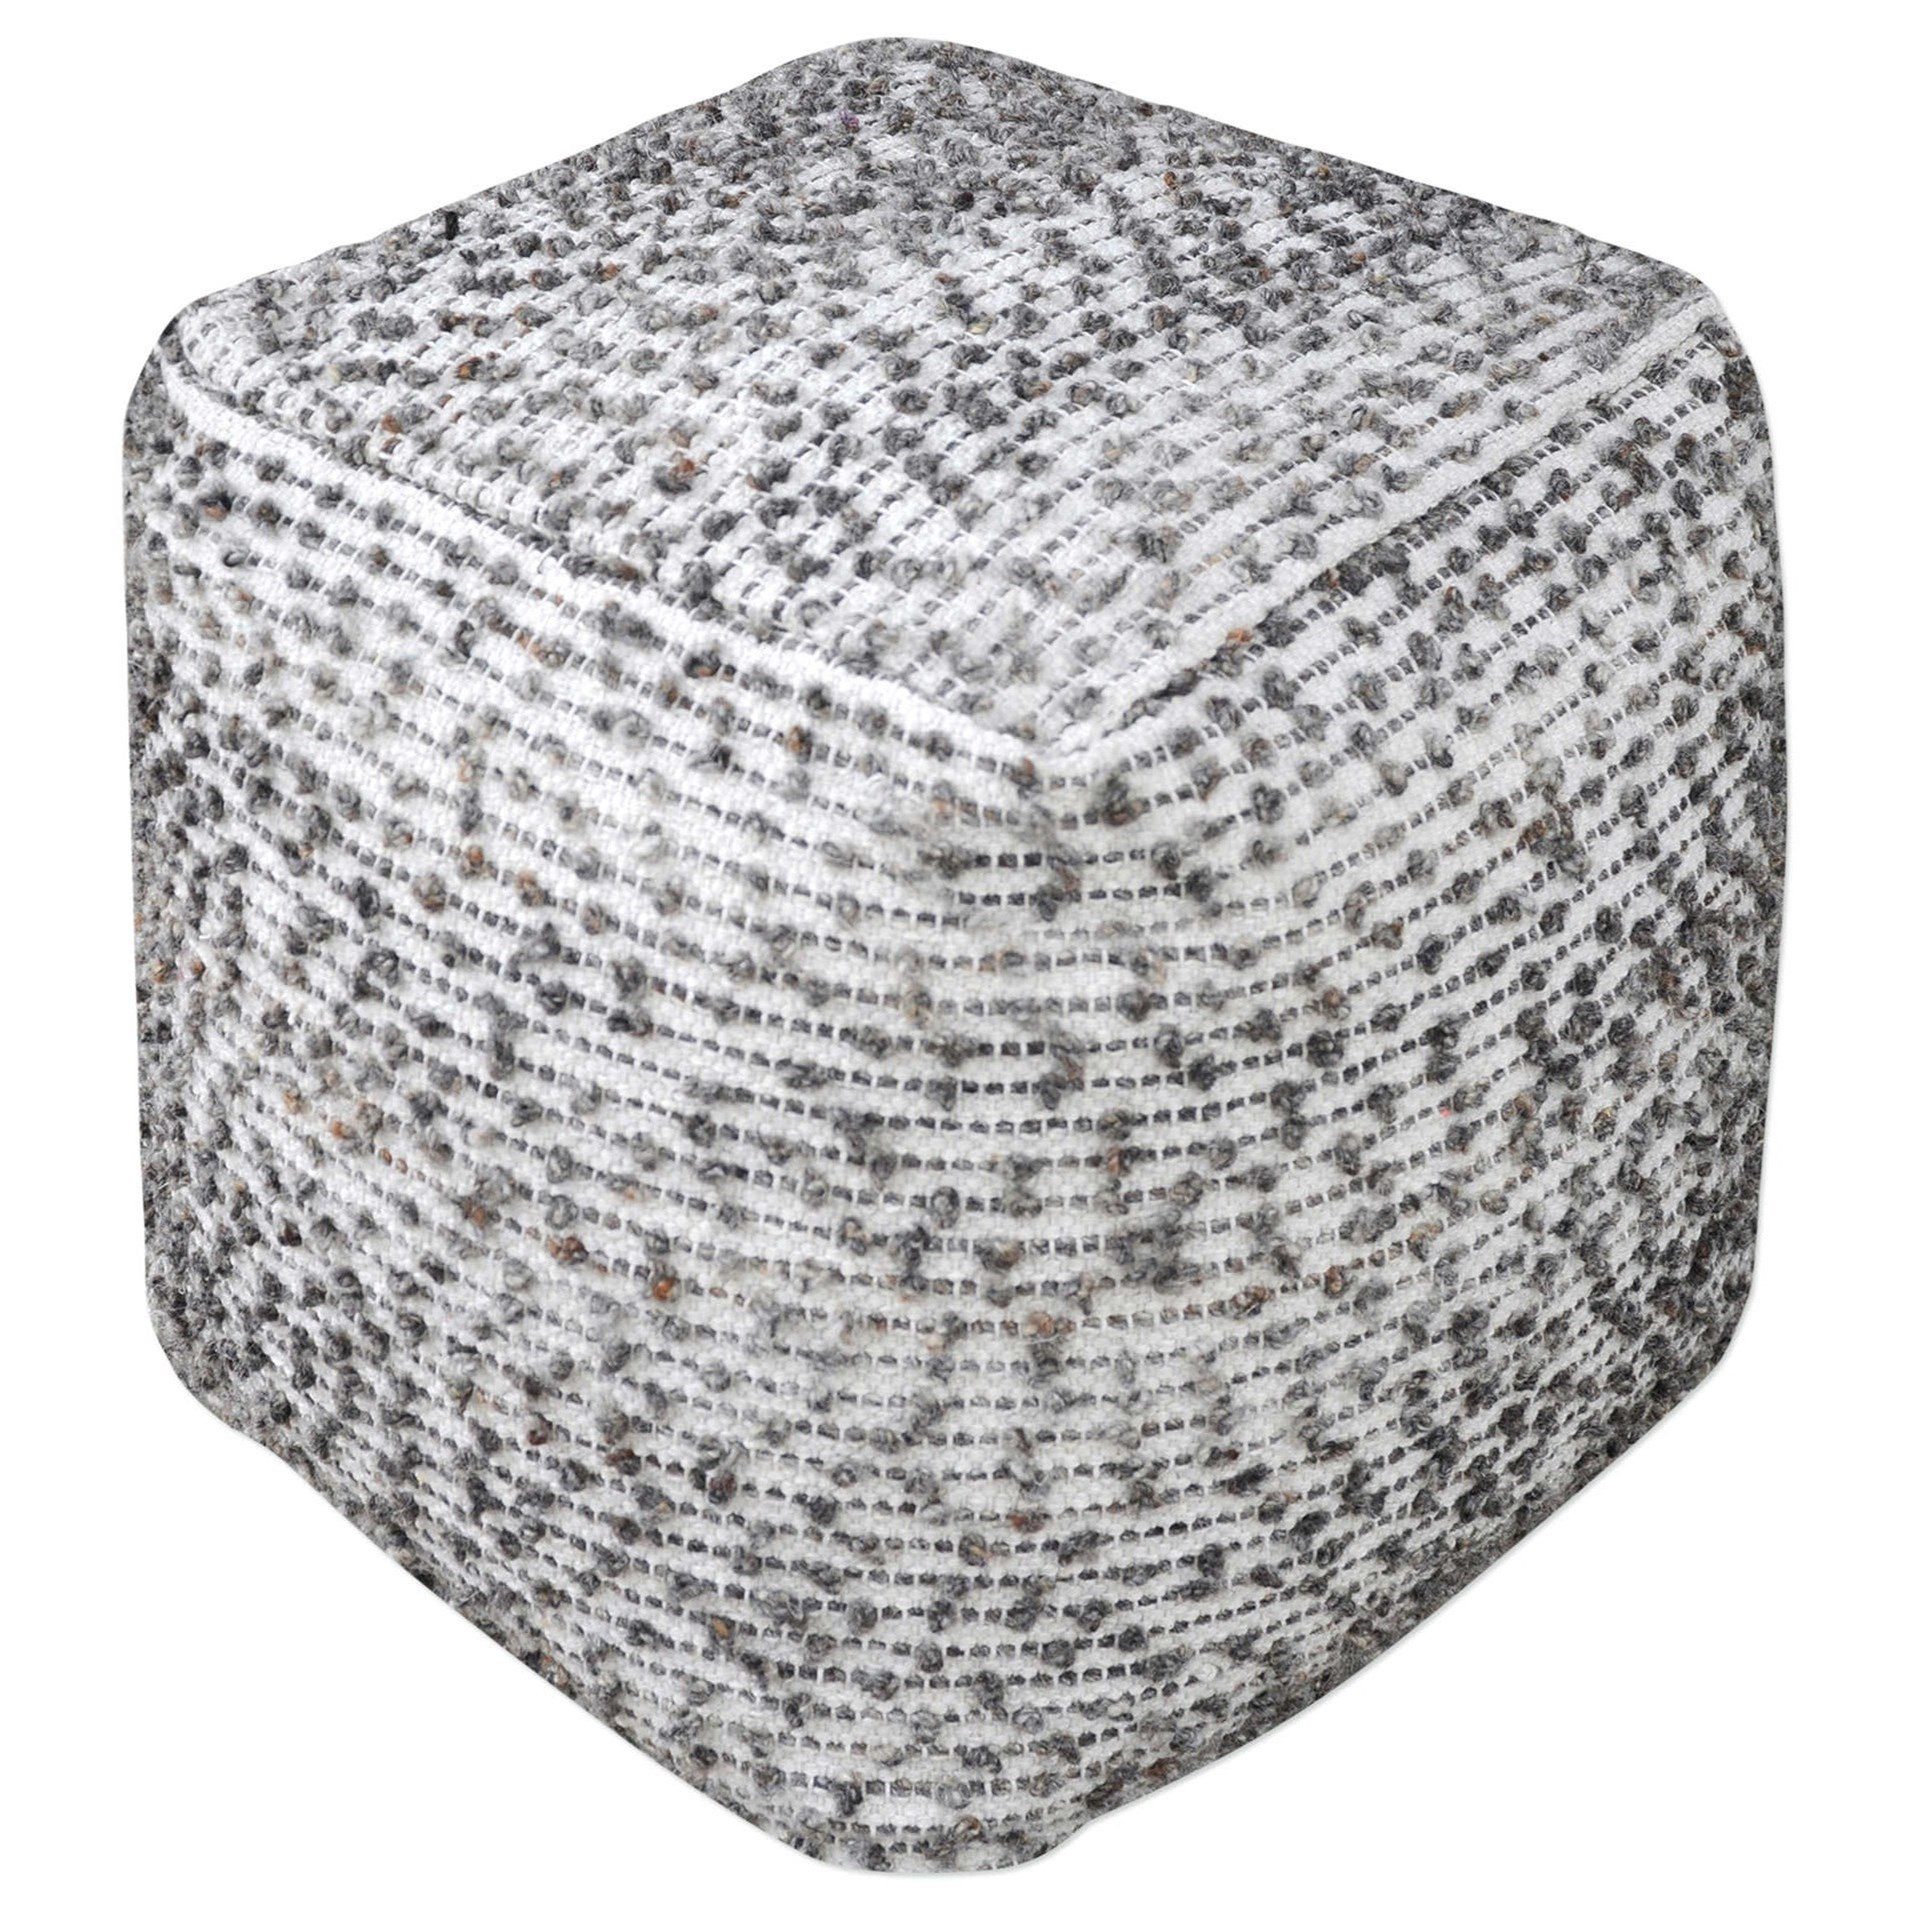 Accent Furniture - Ottomans Valda Linen Wool Pouf by Uttermost at Factory Direct Furniture